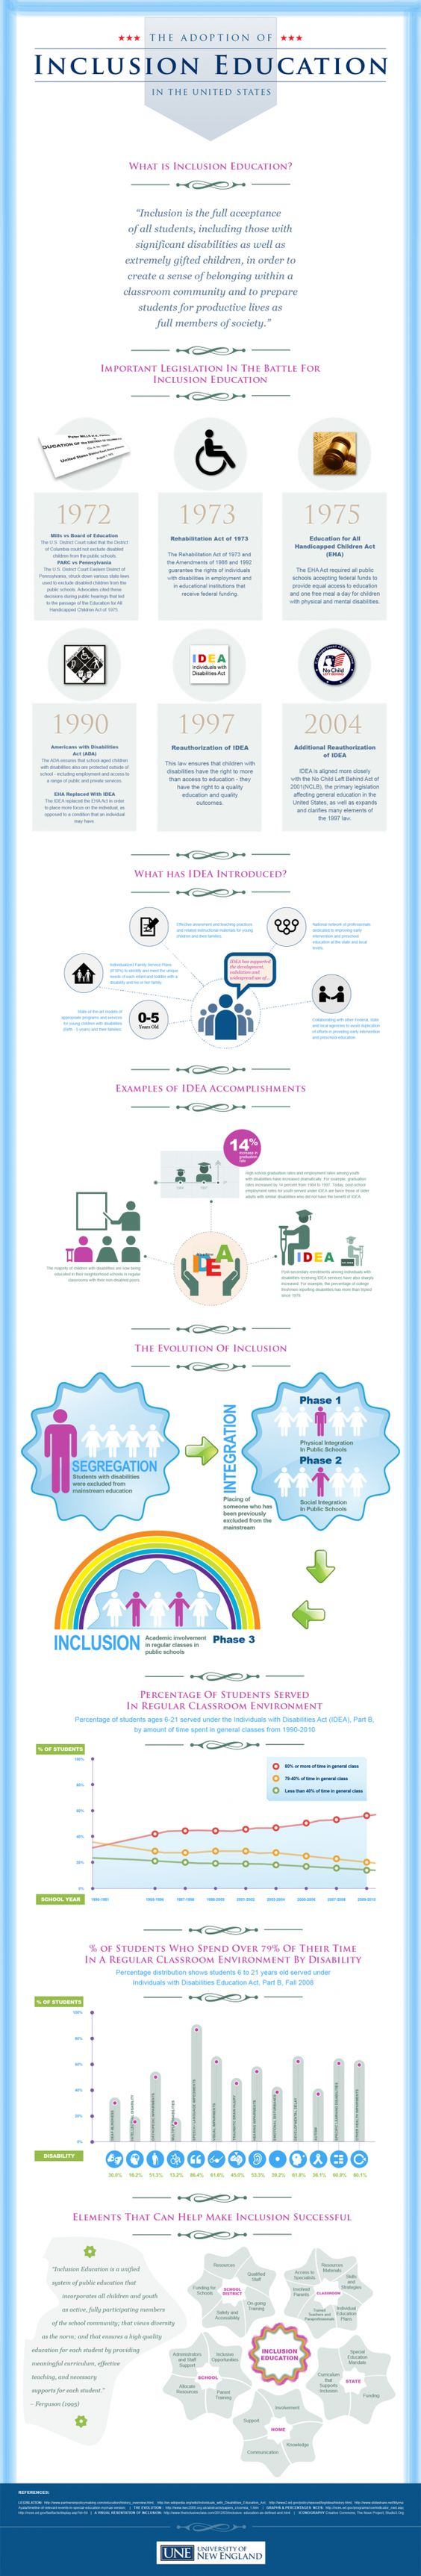 An Overview of Inclusive Education in the United States